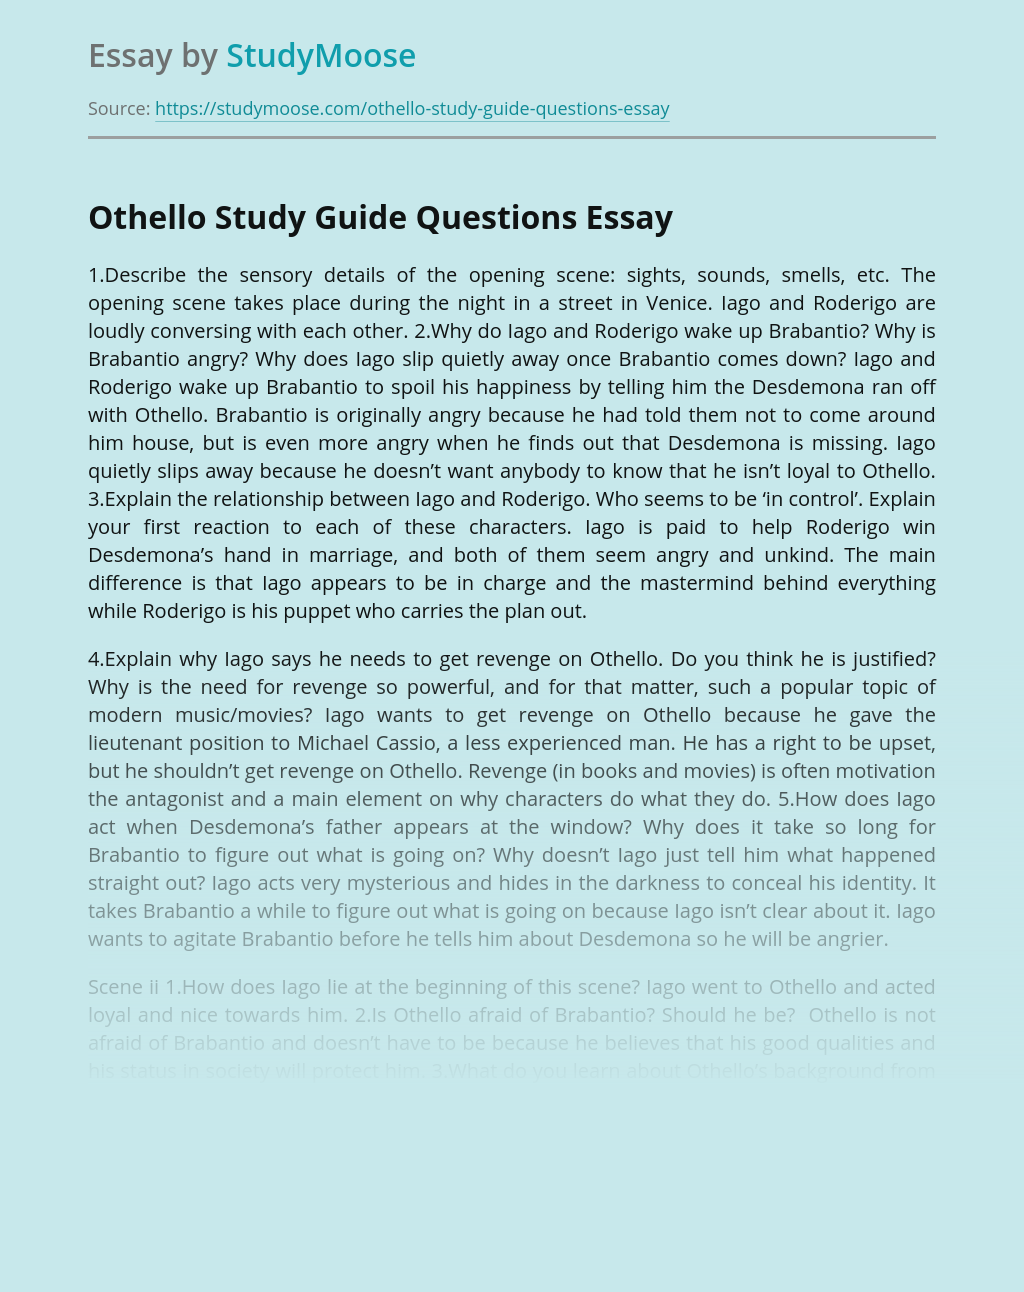 Othello Study Guide Questions